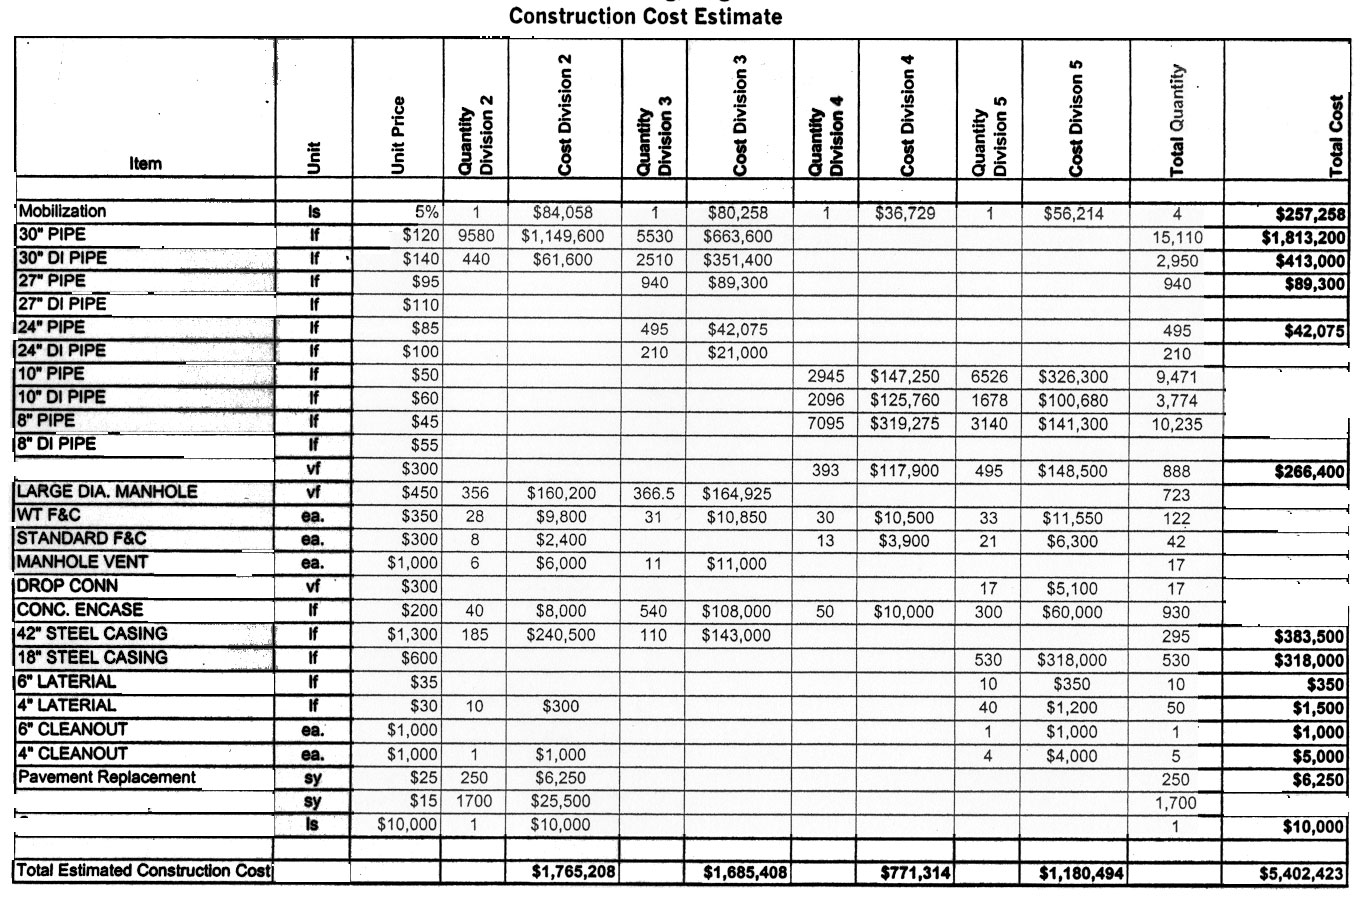 Construction Cost Estimate Sheet Construction Cost